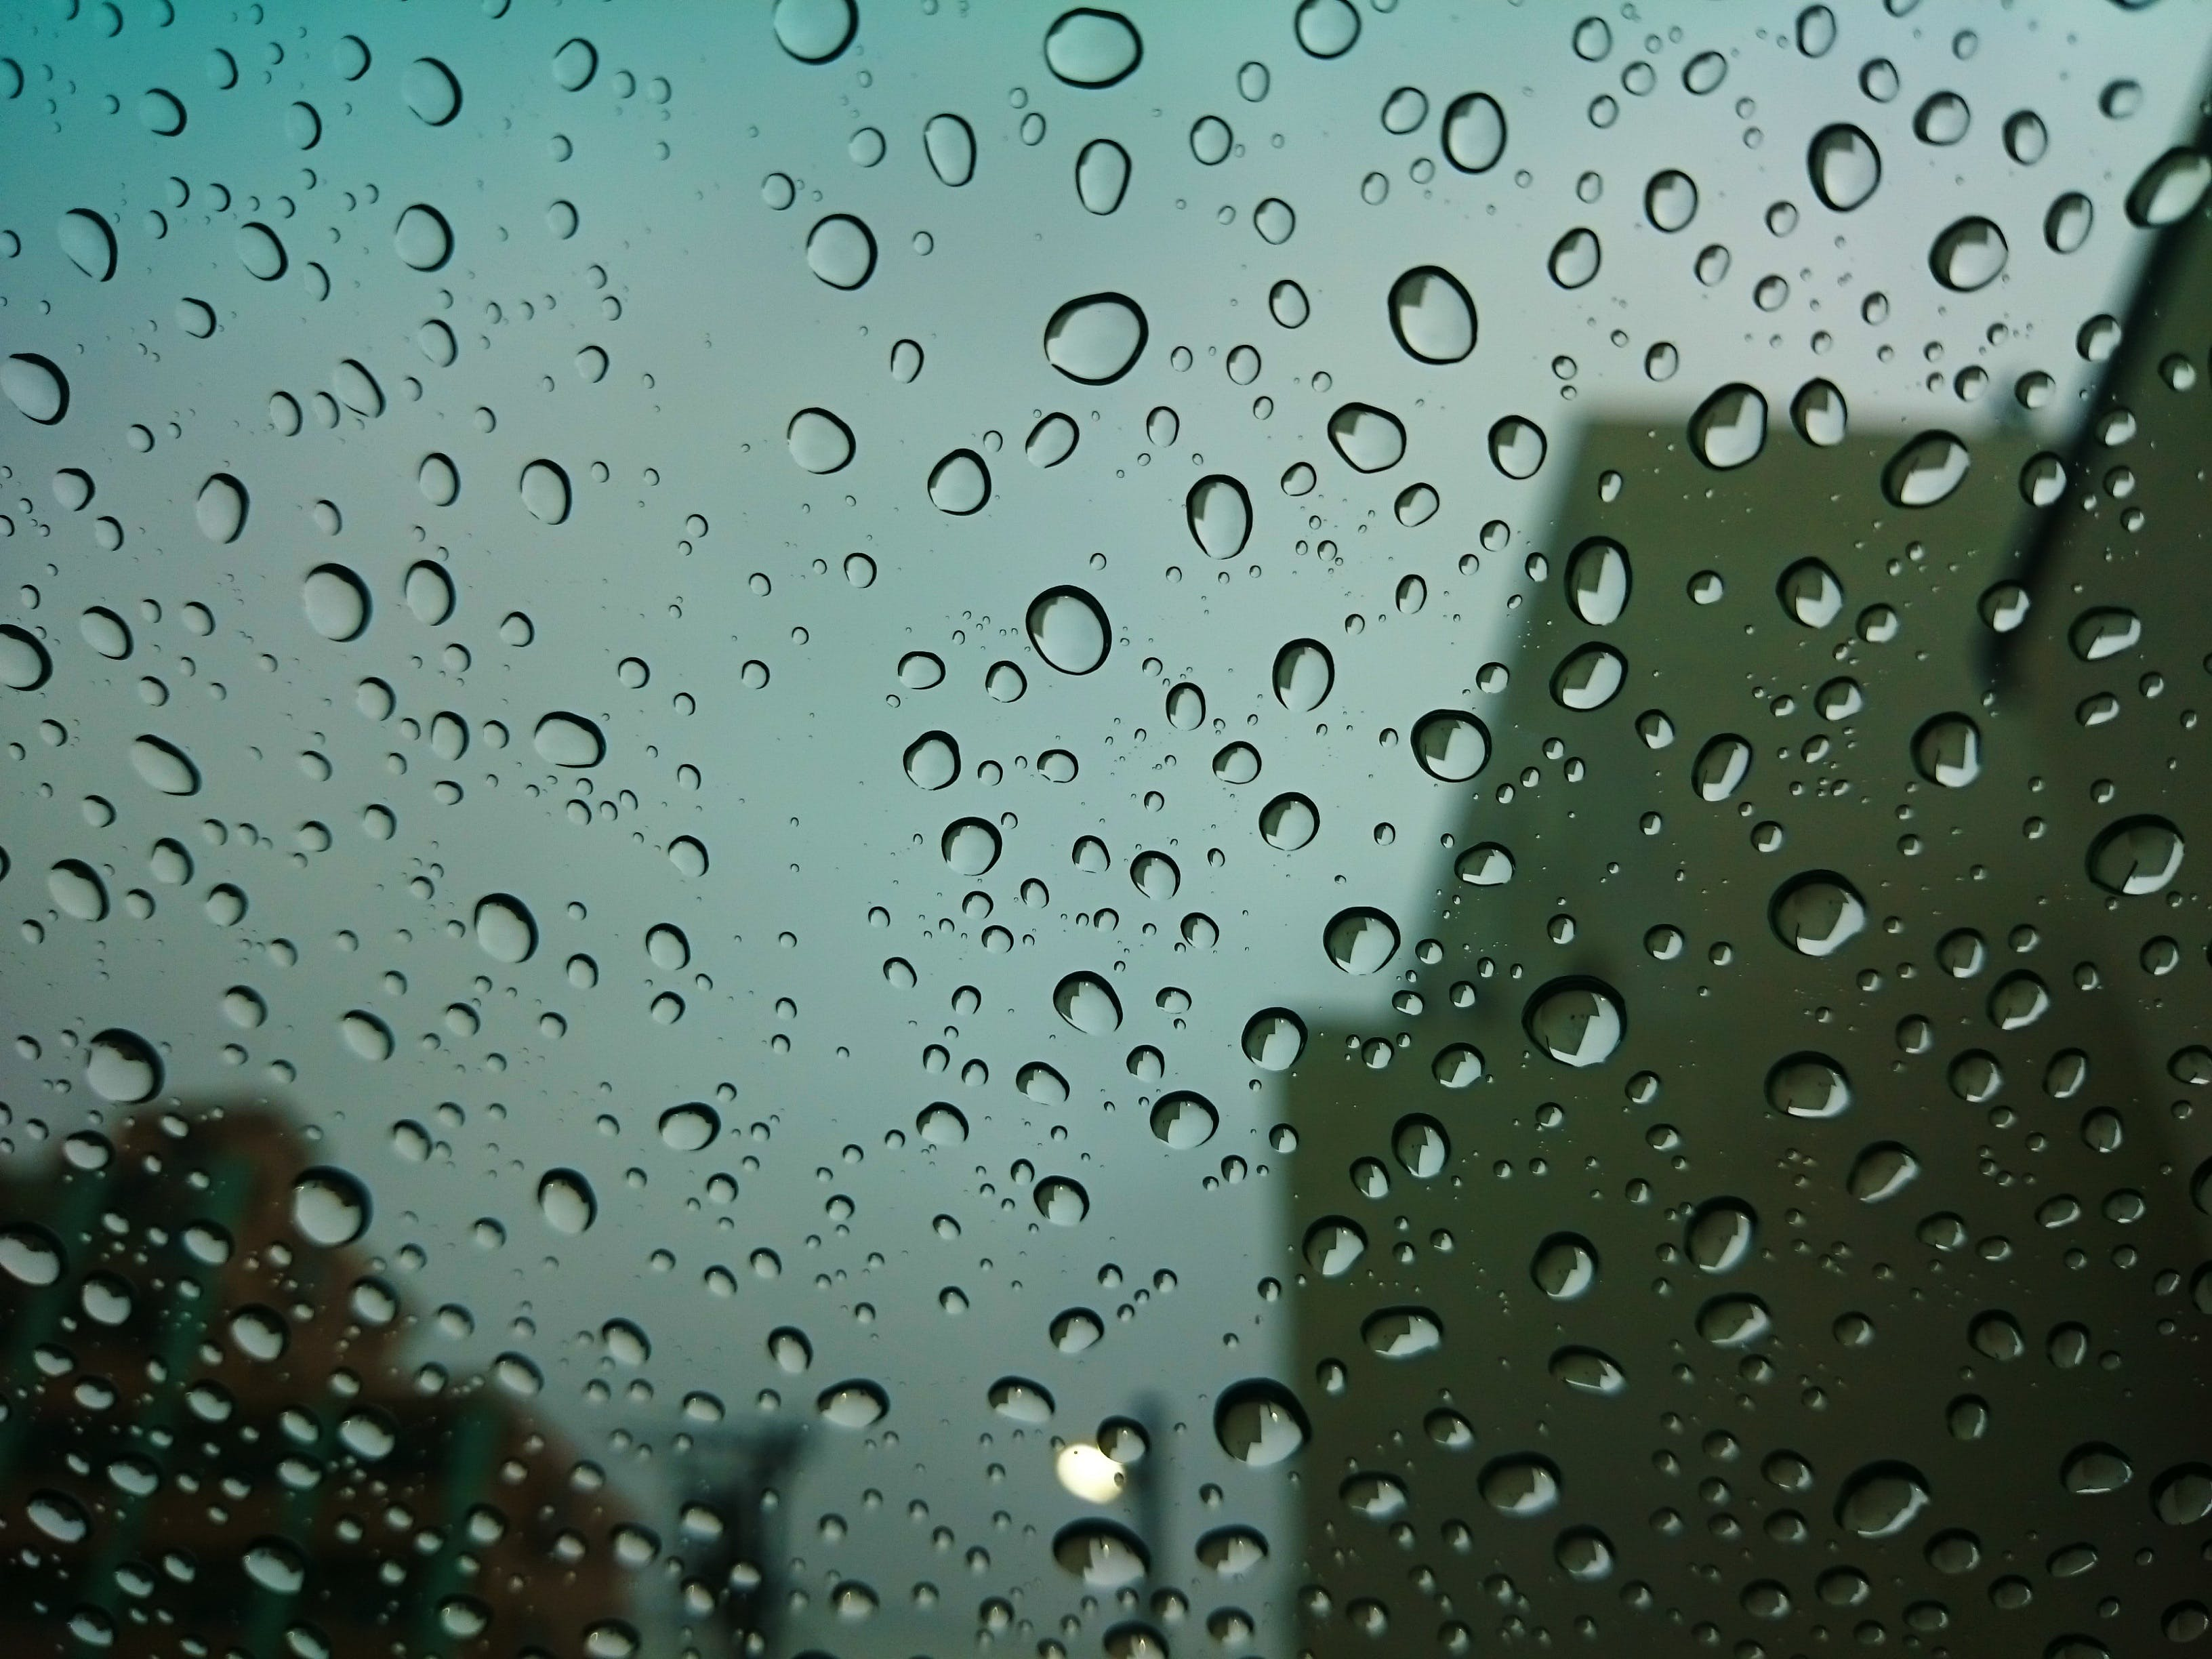 Free stock photo of water, glass, rainy, blur